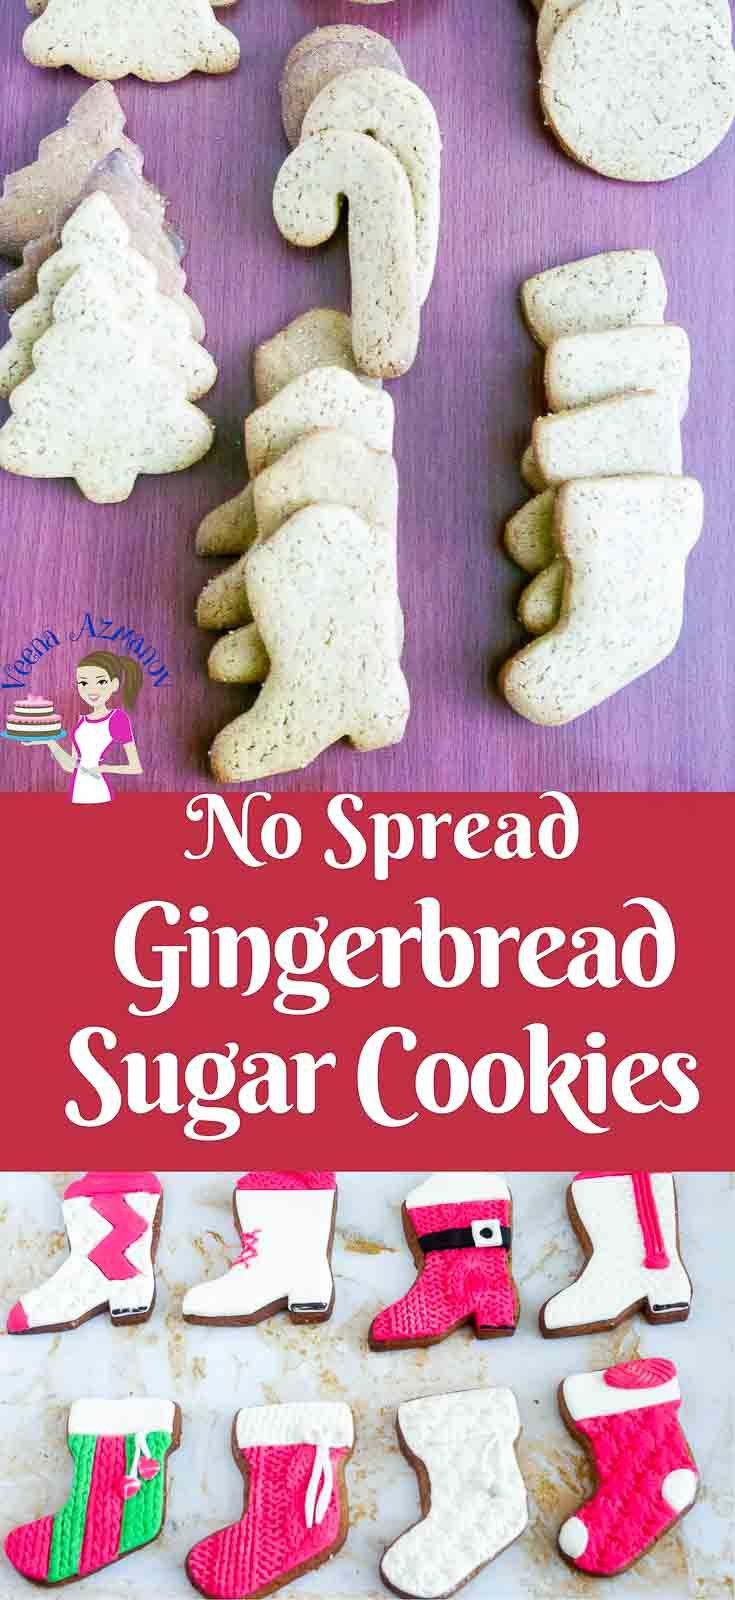 These Gingerbread Sugar Cookies are perfect for this time of the year weather you want to eat them as is or decorate them. Unlike regular gingerbread cookies these do not spread which makes them perfect for decorating with fondant and adding them to the cookie hamper. via @Veenaazmanov  #christmas #cookies #gingerbread #cookierecipe #recipe #baking #nospread #holiday #gingerbreadcookies #veenaazmanov